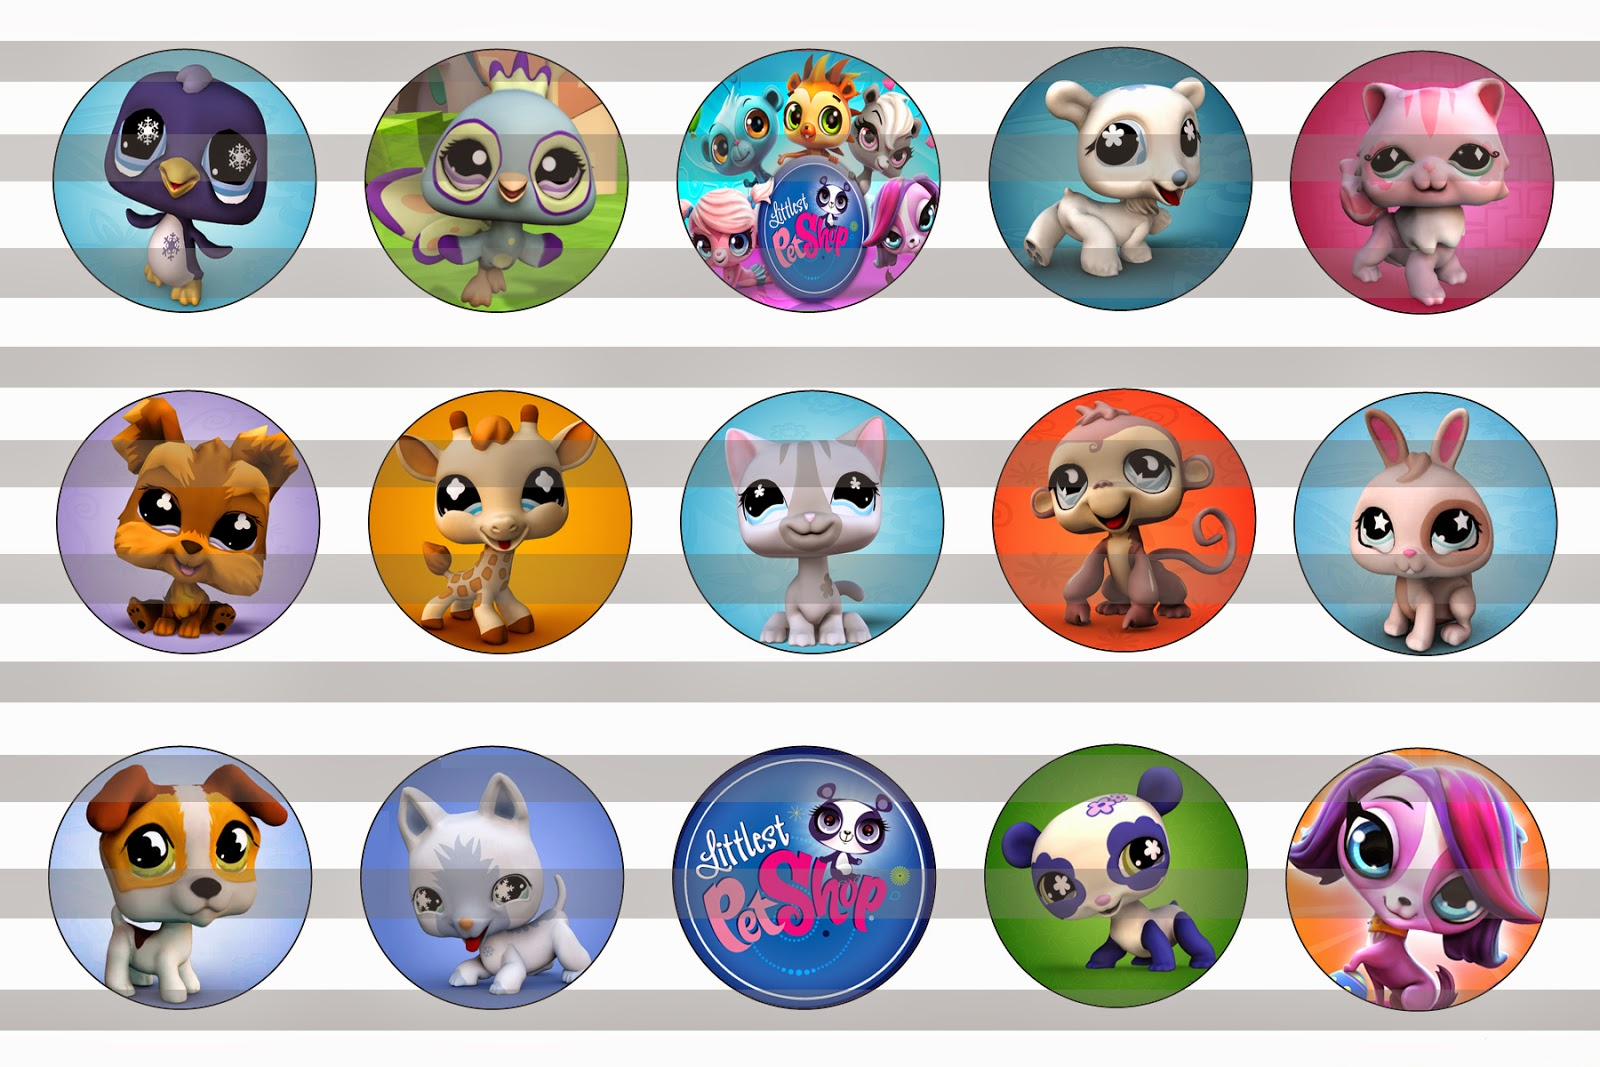 Unique bottle cap designs littlest pet shop bottle cap image for Cool bottle cap designs